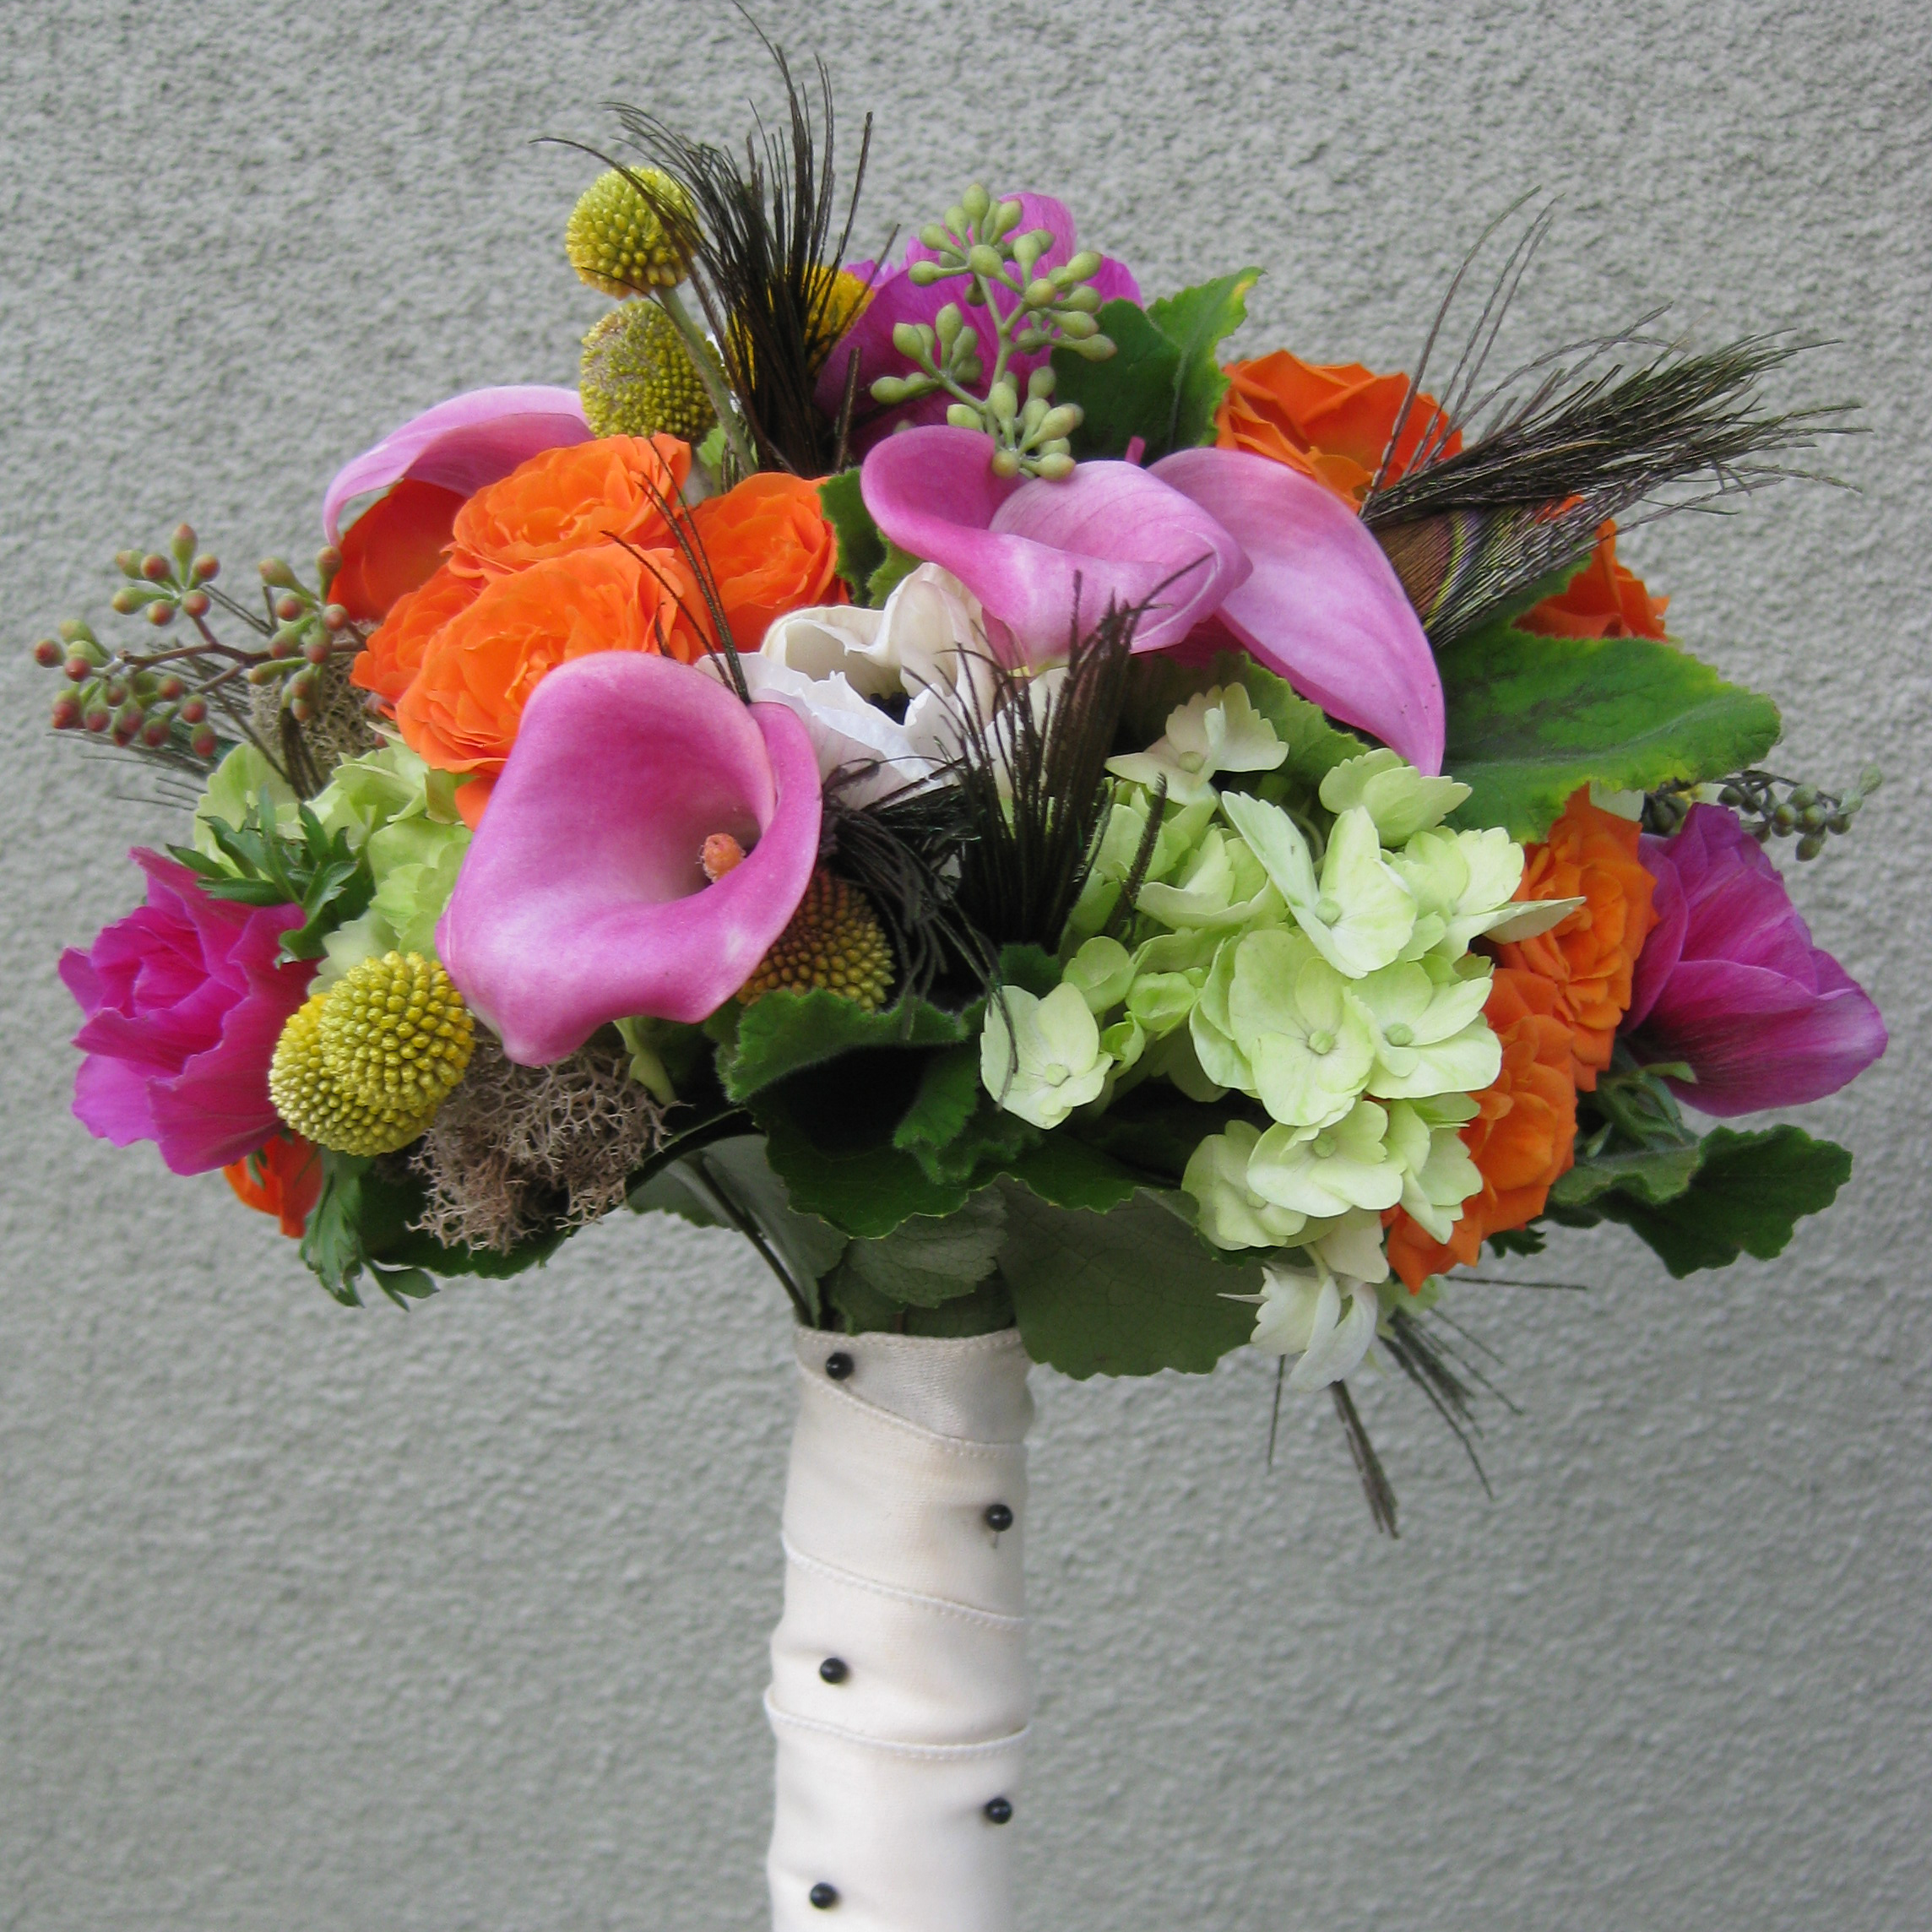 Peacock feathers are tucked low into the bouquet to add the perfect amount